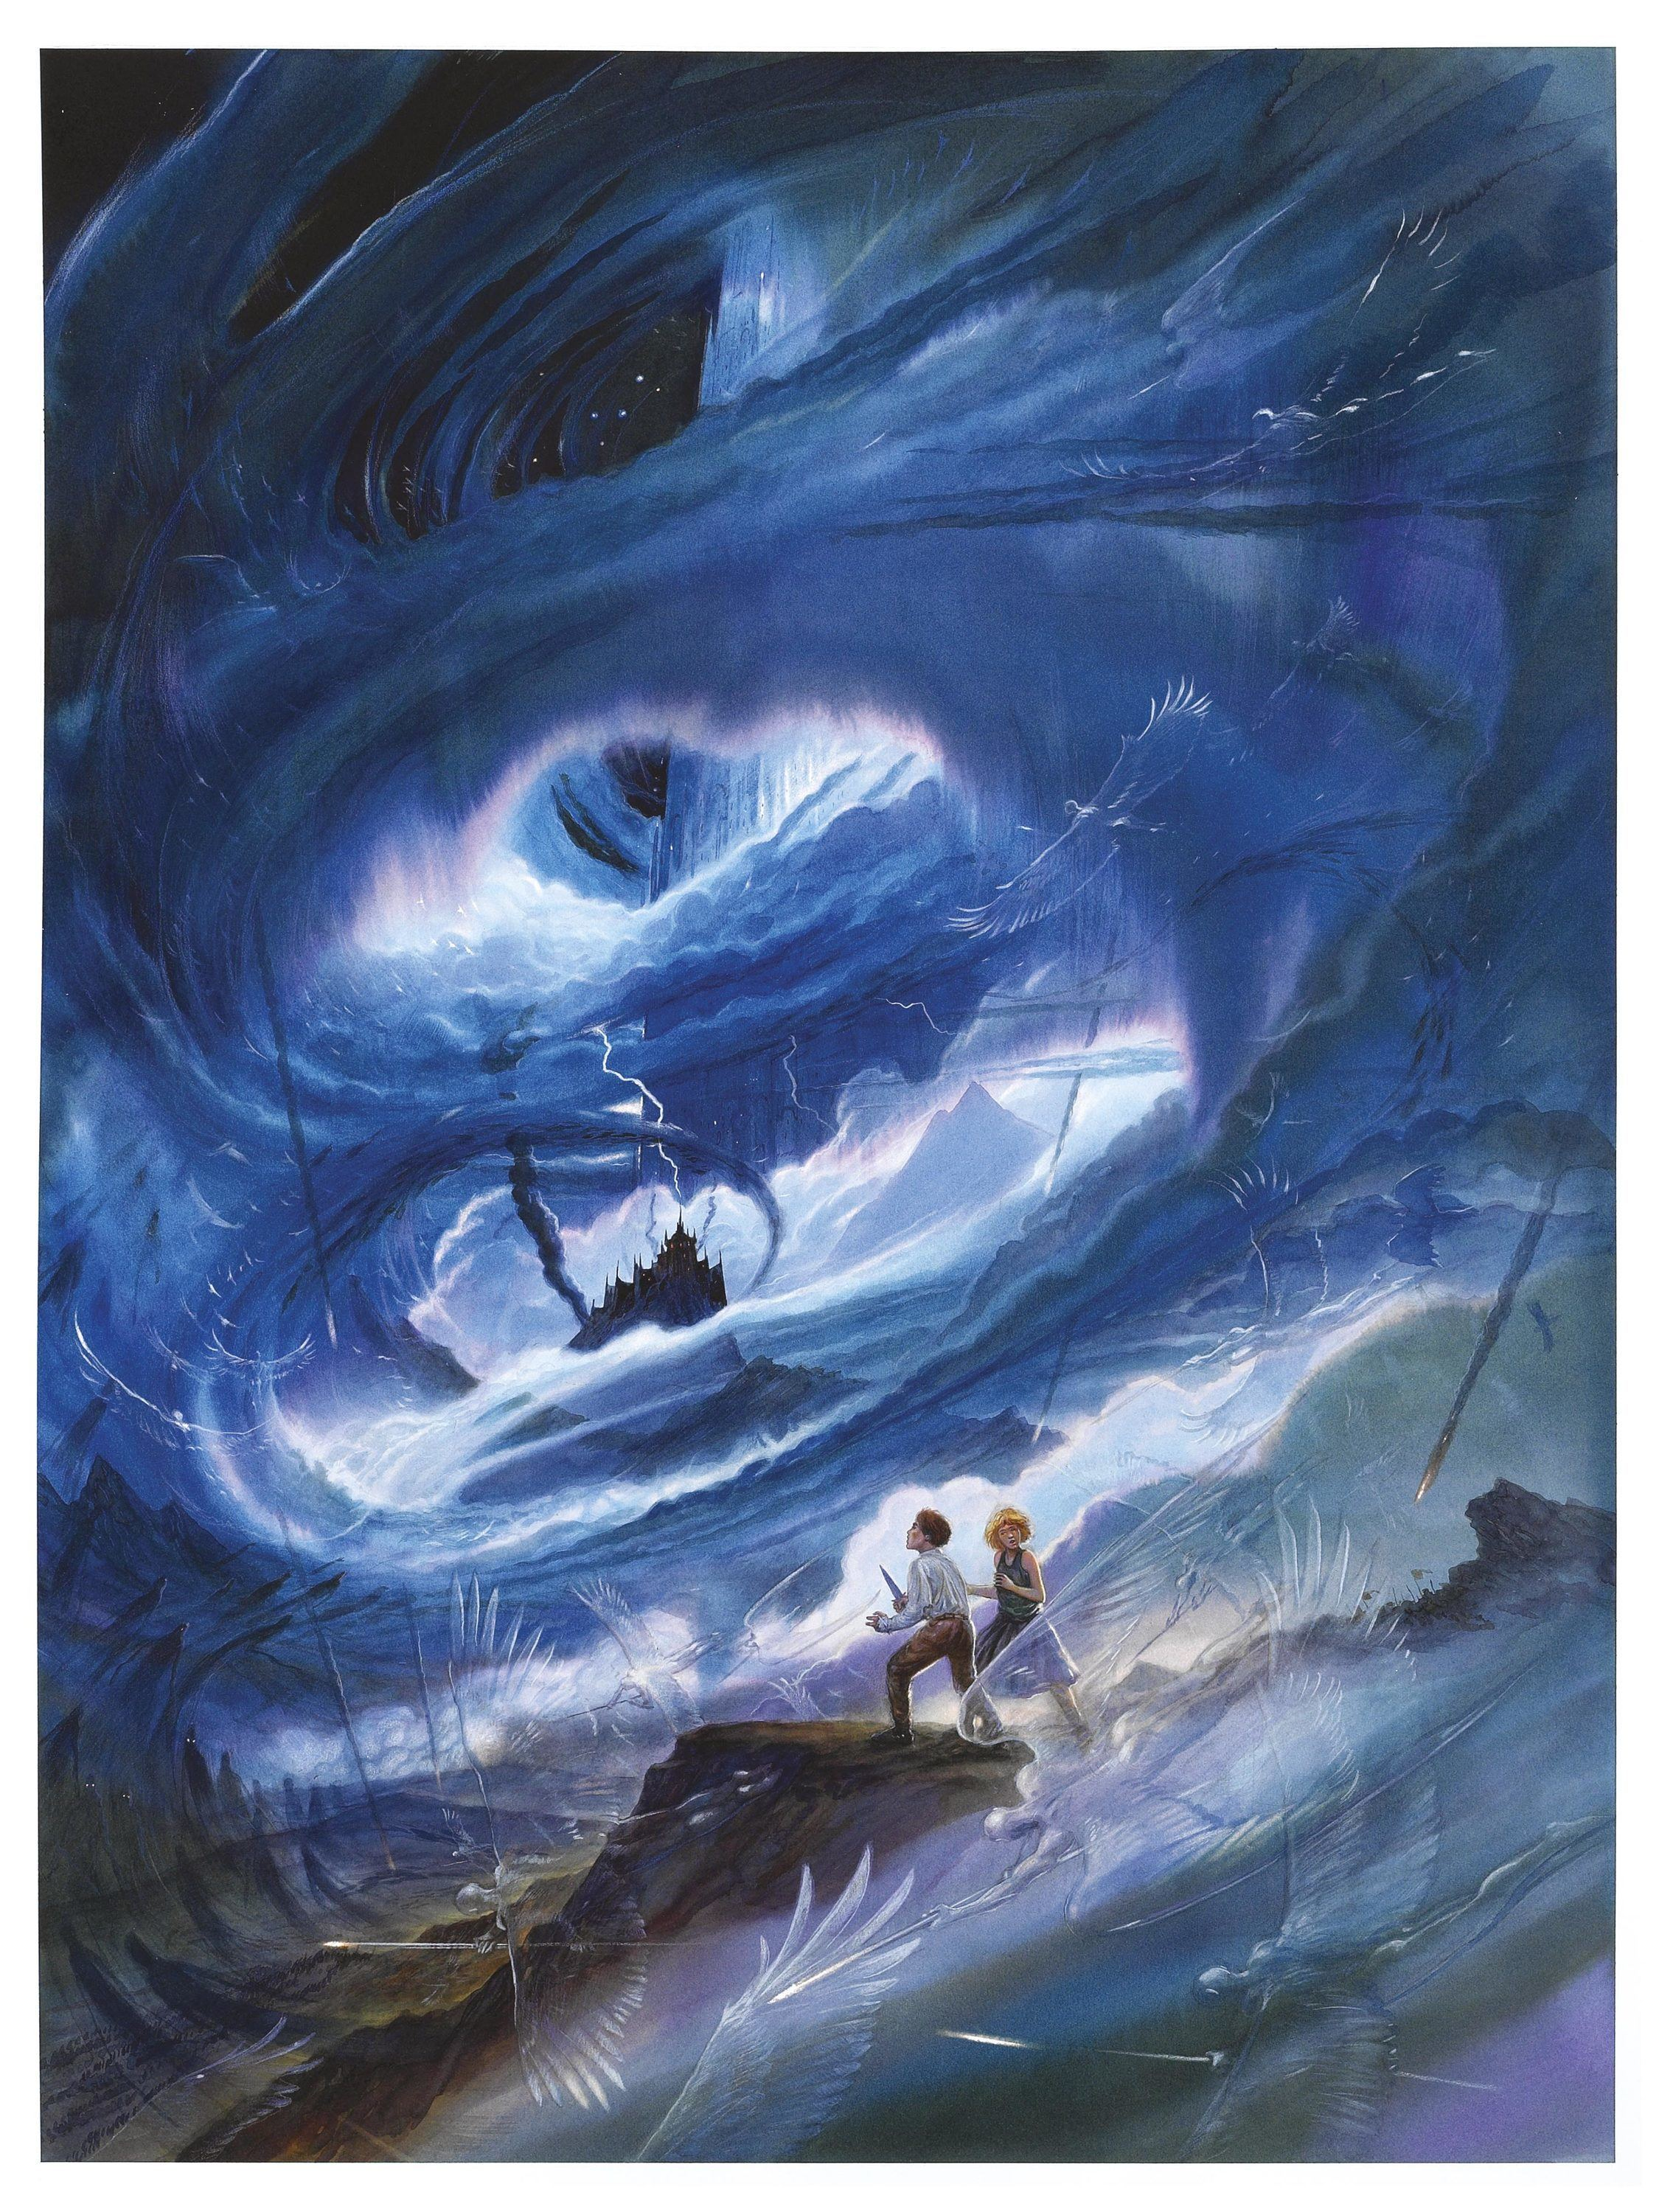 illustration de John Howe, 2002.